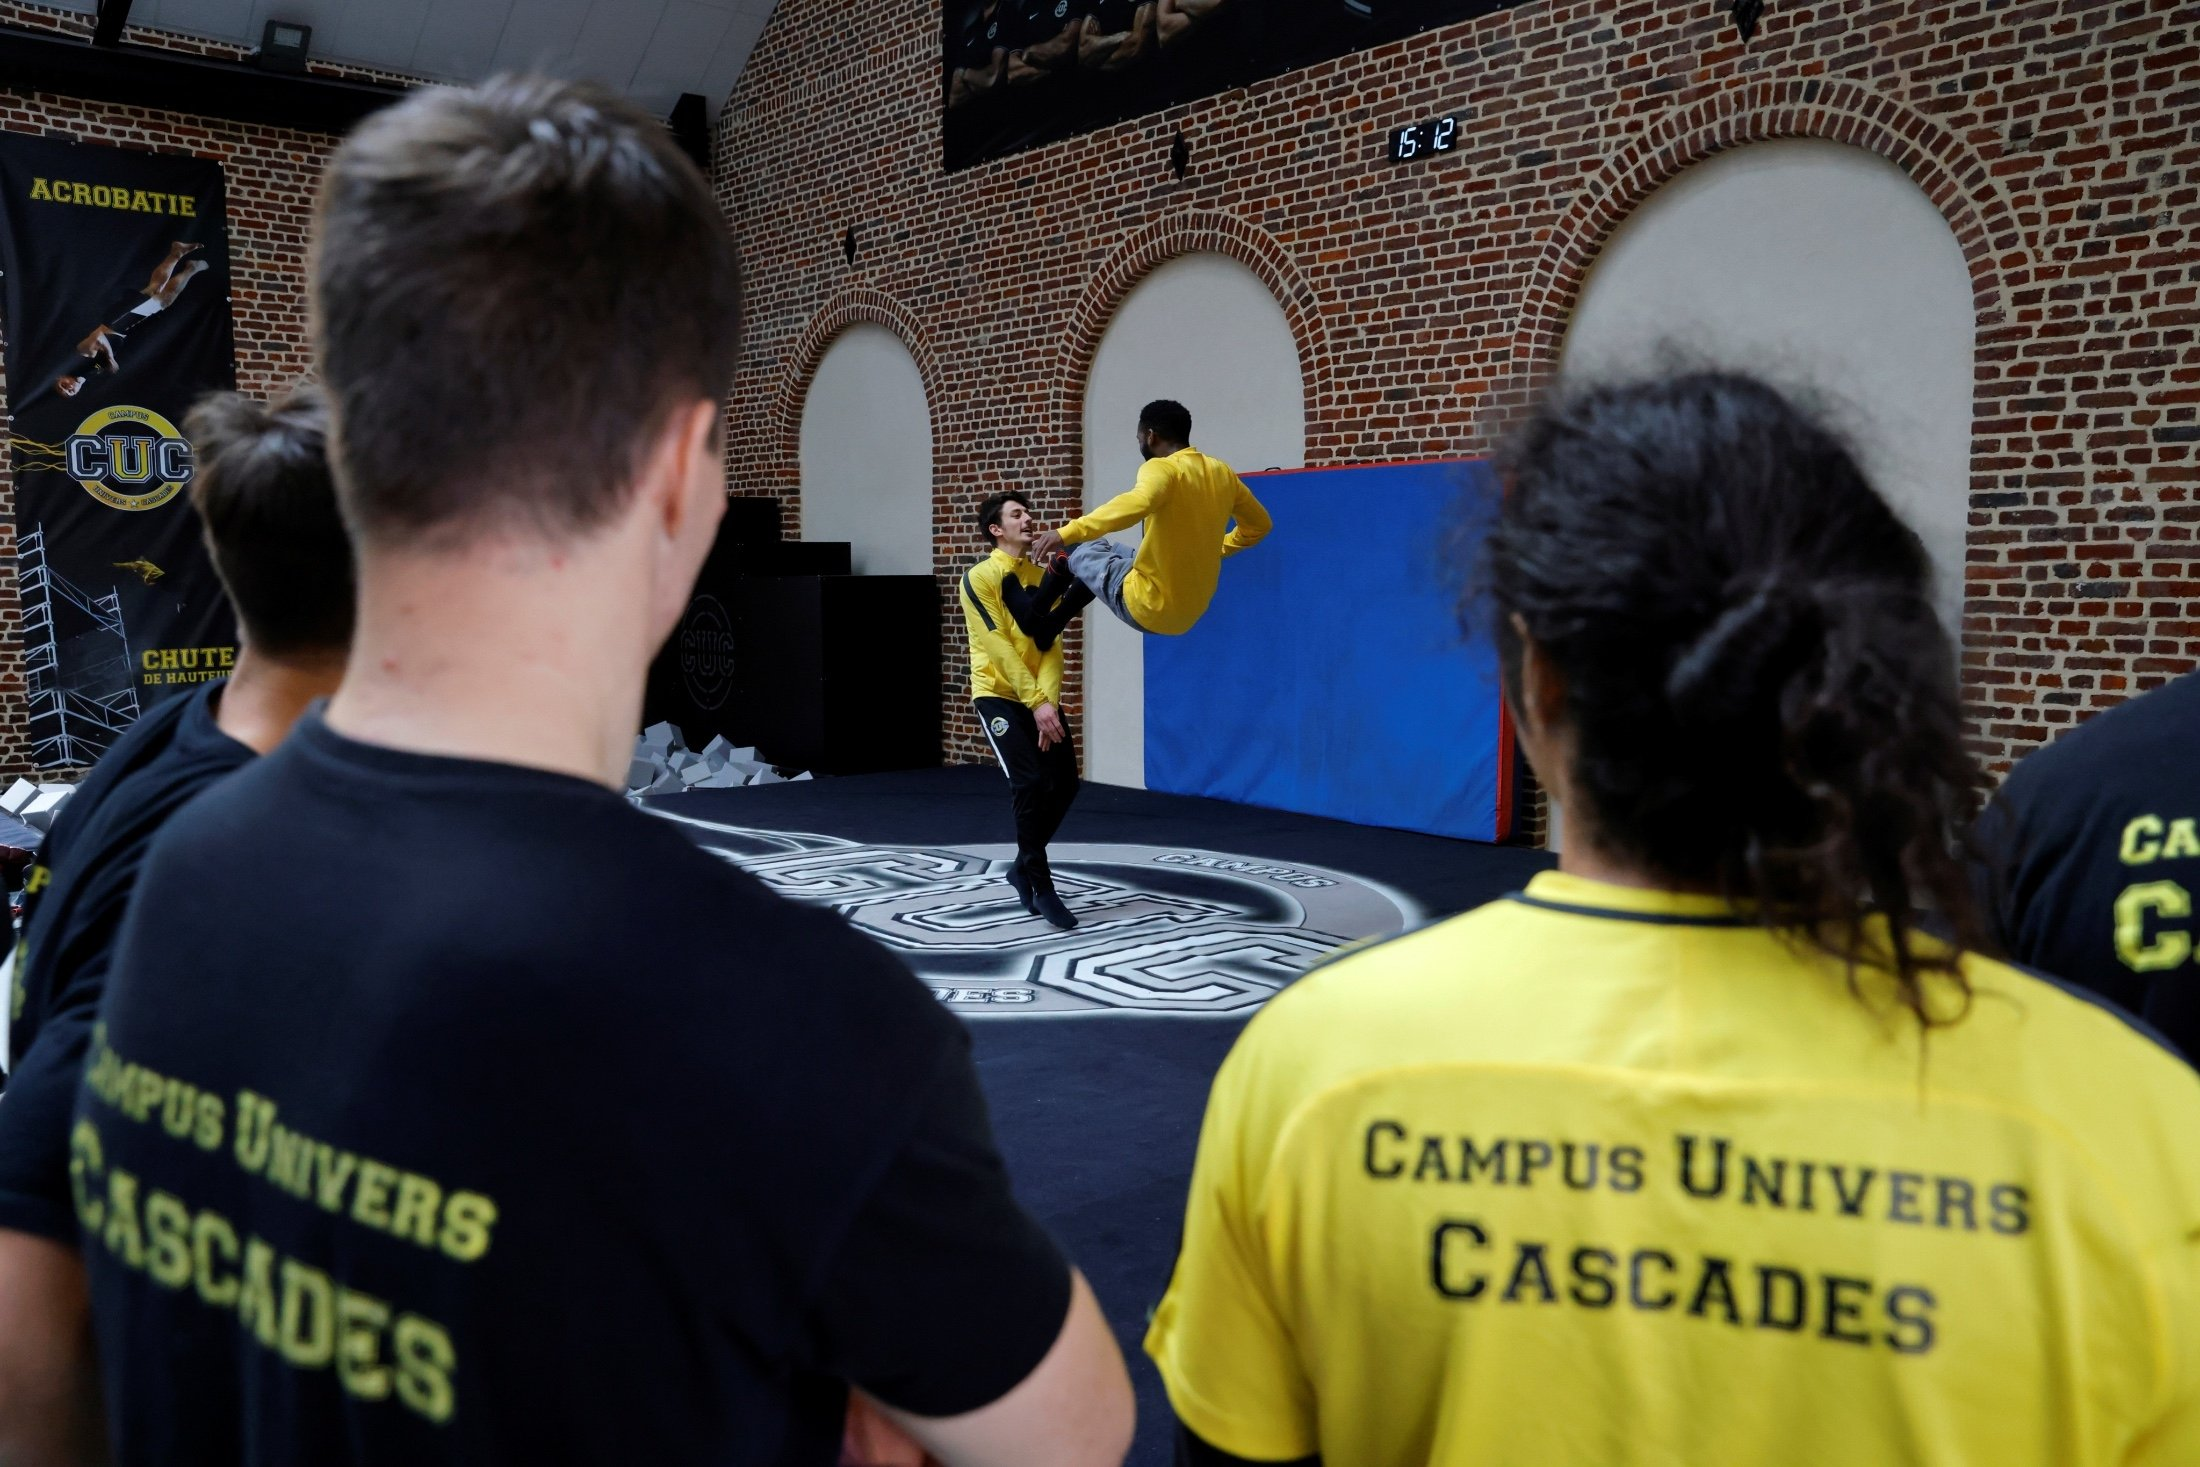 Students attend a fall training session at France's Campus Univers Cascade (CUC), a training ground for stuntpeople, in Le Cateau-Cambresis, France, May 4, 2021. (Reuters Photo)